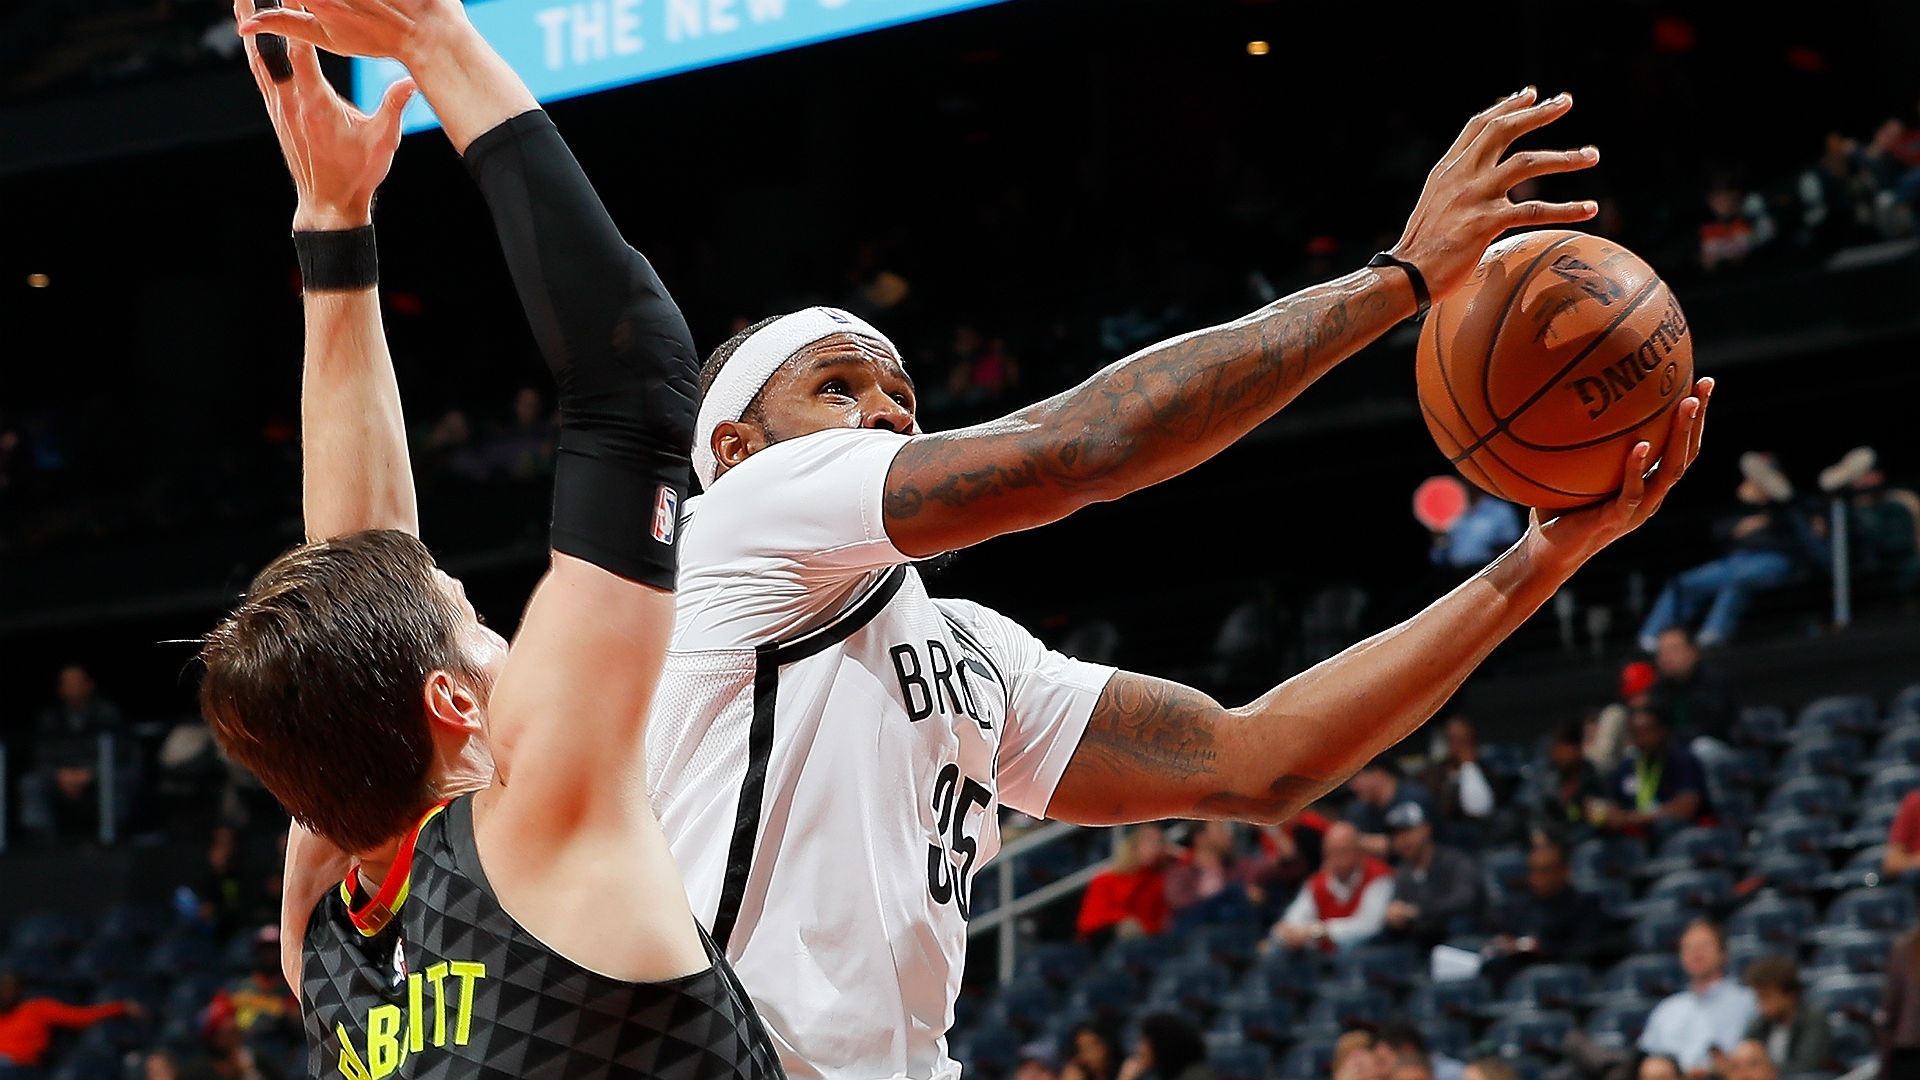 Nba Player Trevor Booker >> NBA free agency rumors: Cavaliers have expressed interest in Luke Babbitt, Trevor Booker | NBA ...